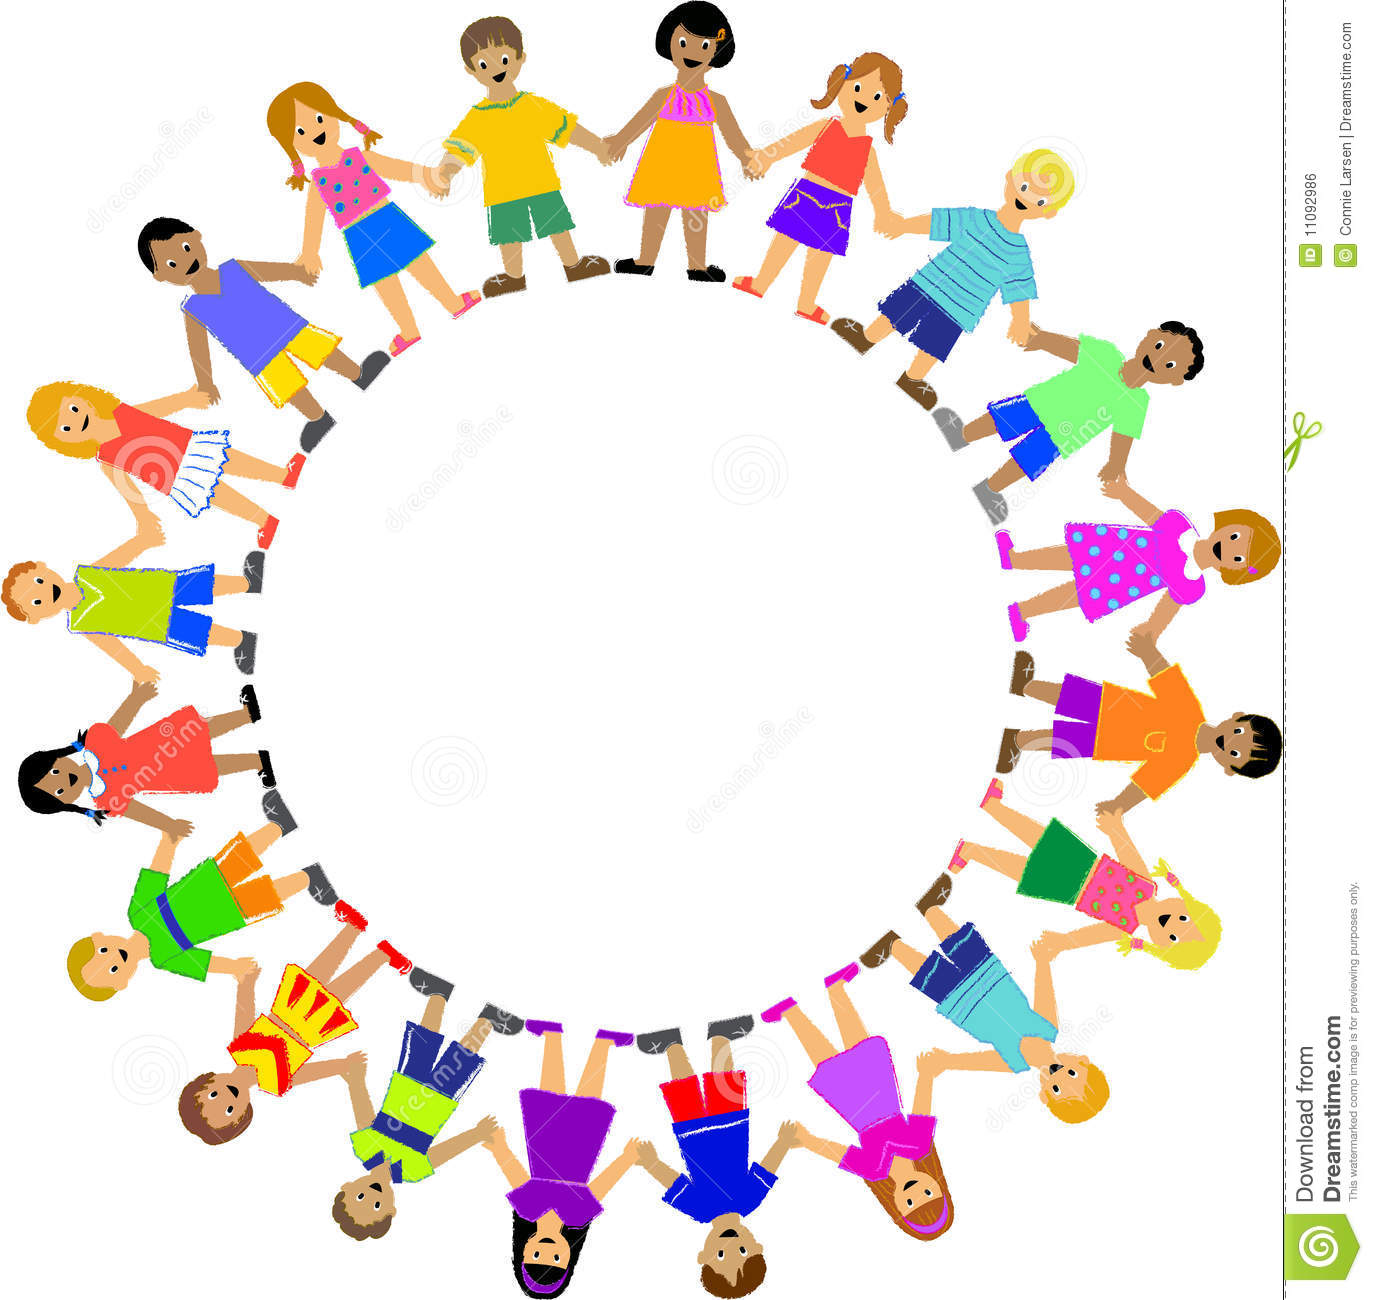 Related Image With People Circle Holding Hands Clip Art